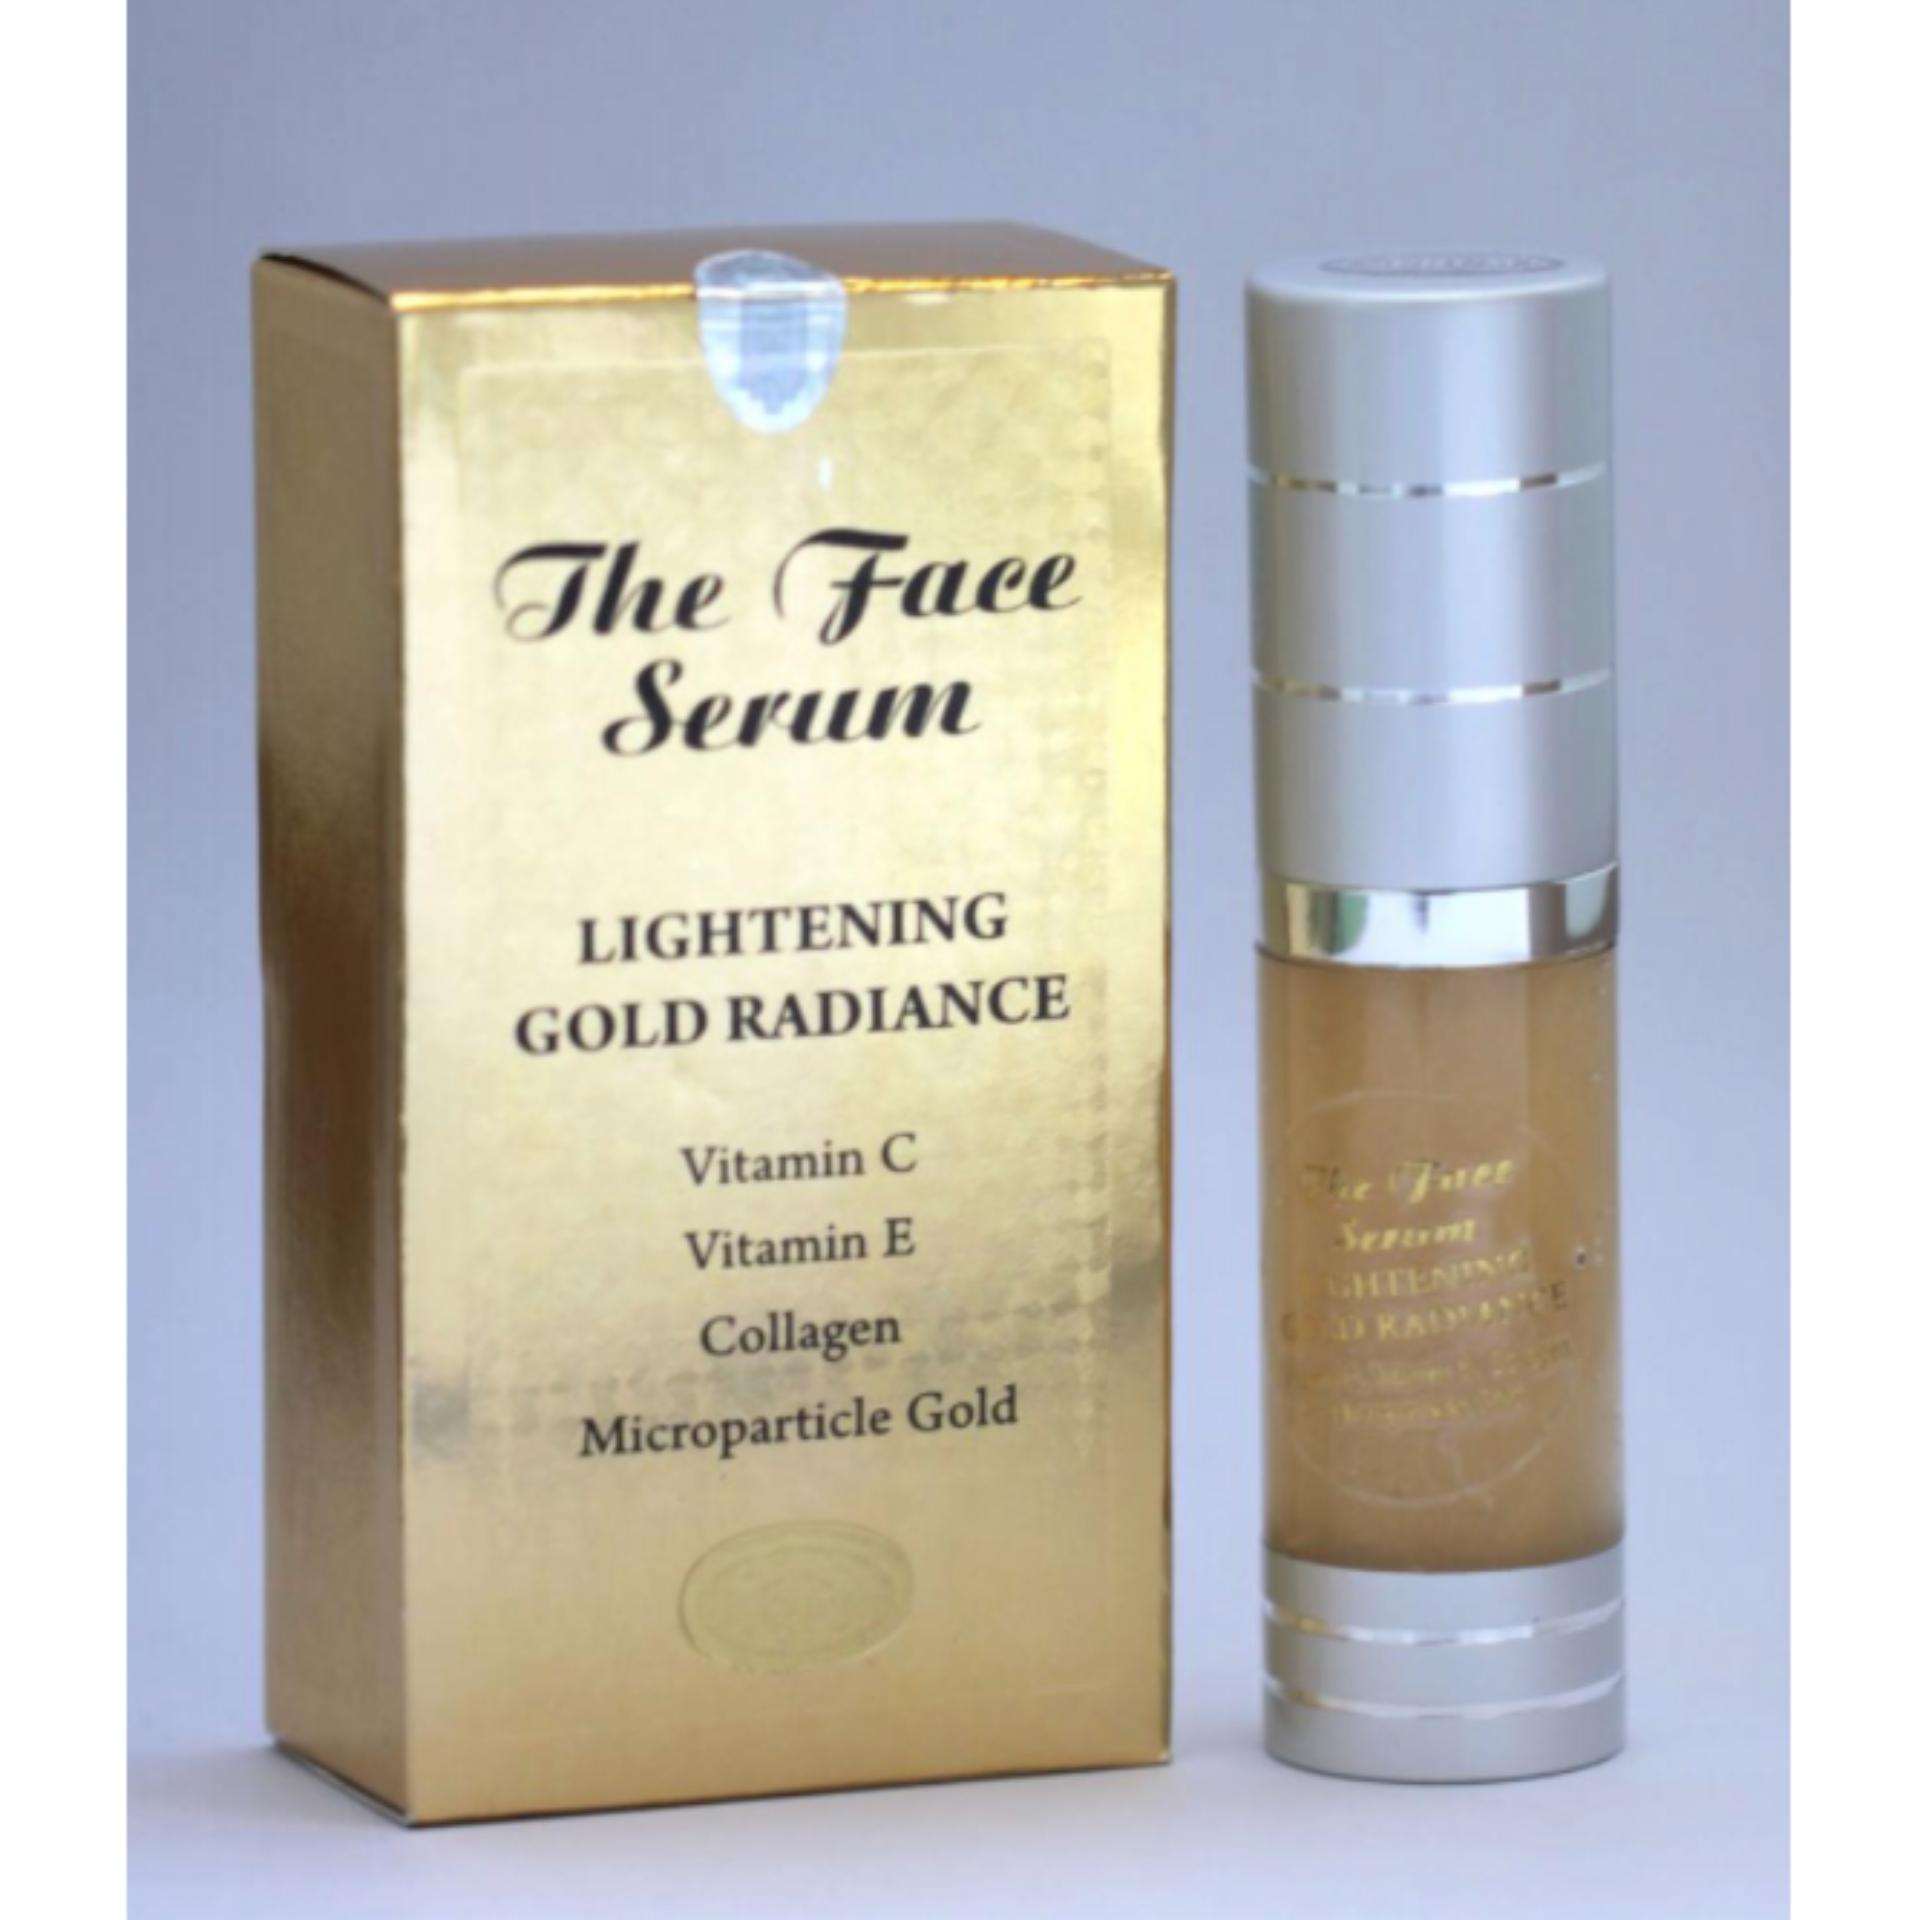 THE FACE SERUM LIGHTENING GOLD RADIANCE VIT C VIT E COLLAGEN